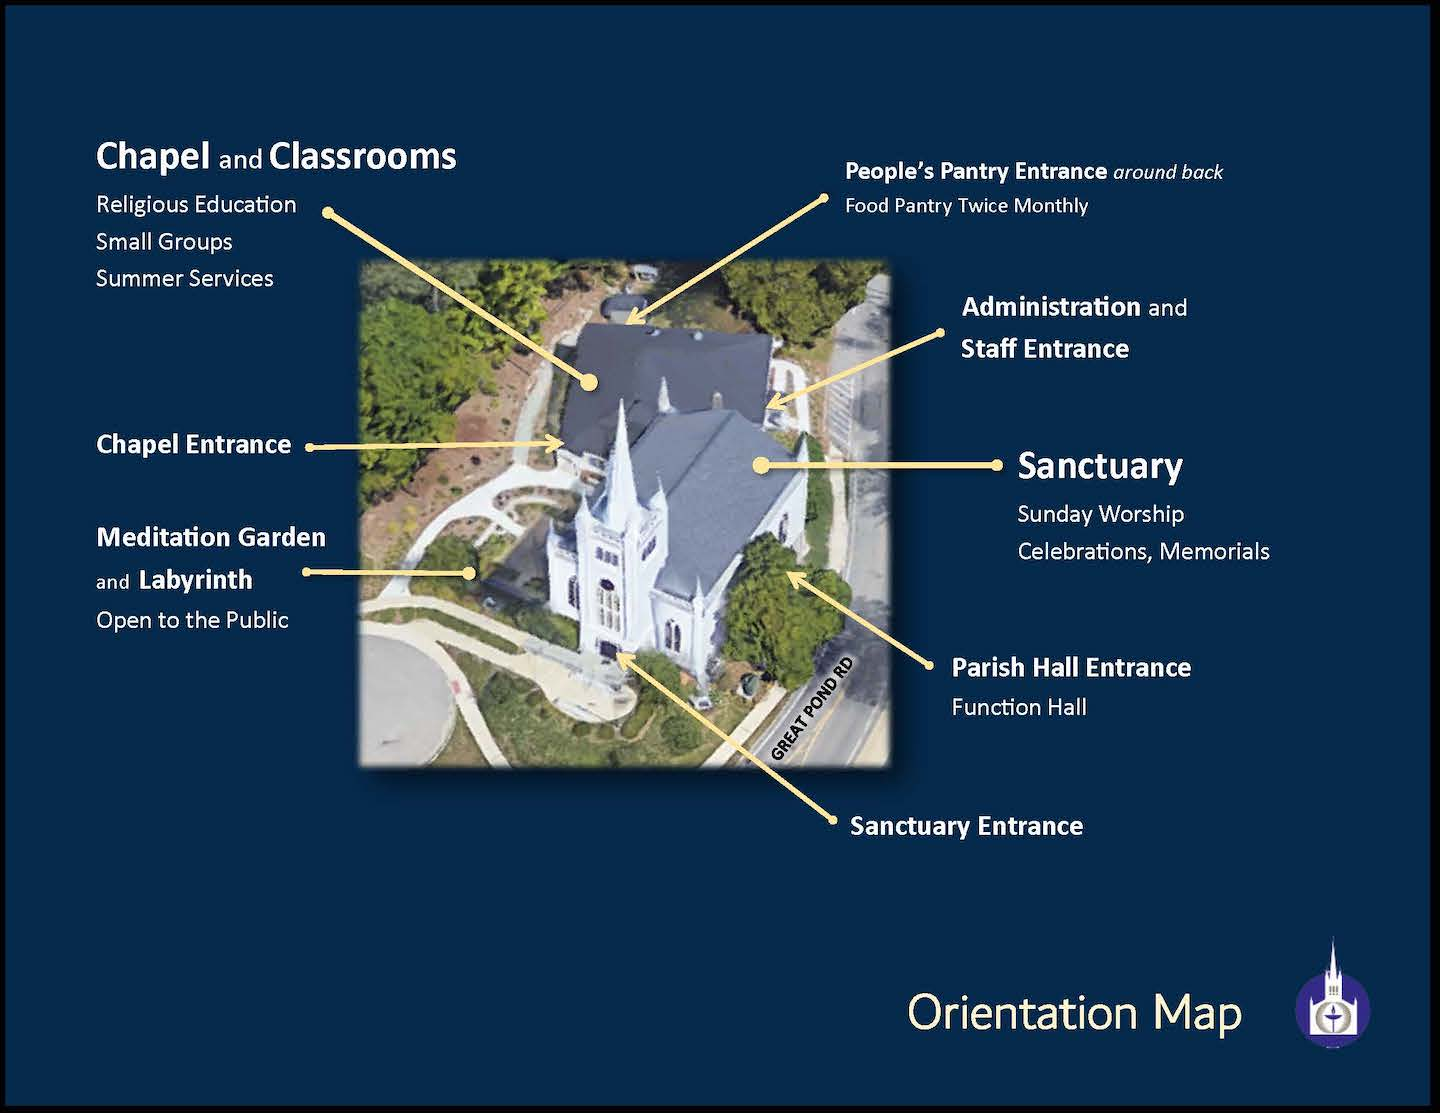 Aerial view of the Church Building showing locations and names of entrances